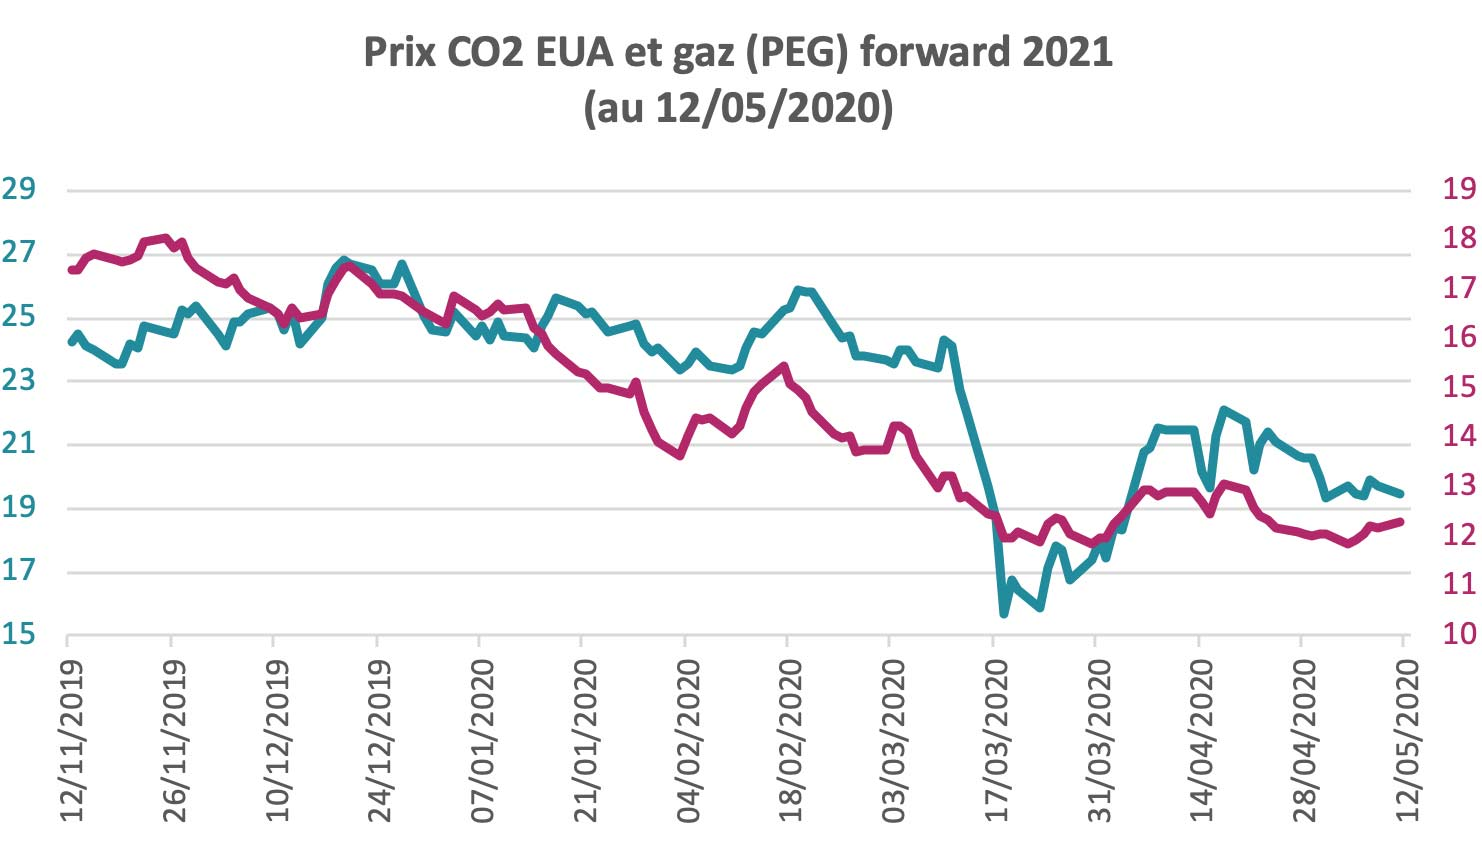 Prix du CO2 et du gaz forward 2021